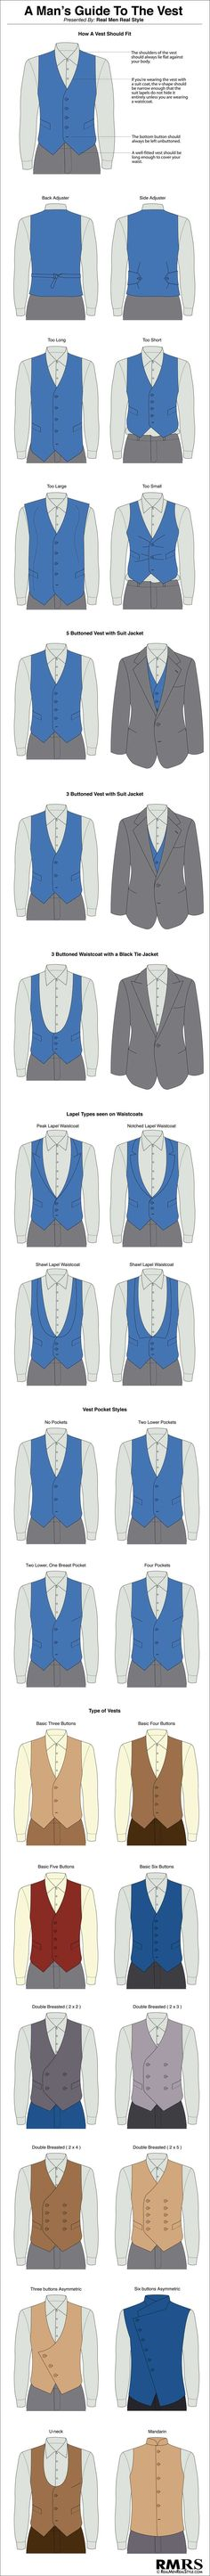 How To Buy A Vest | Ultimate Guide To The Waistcoat